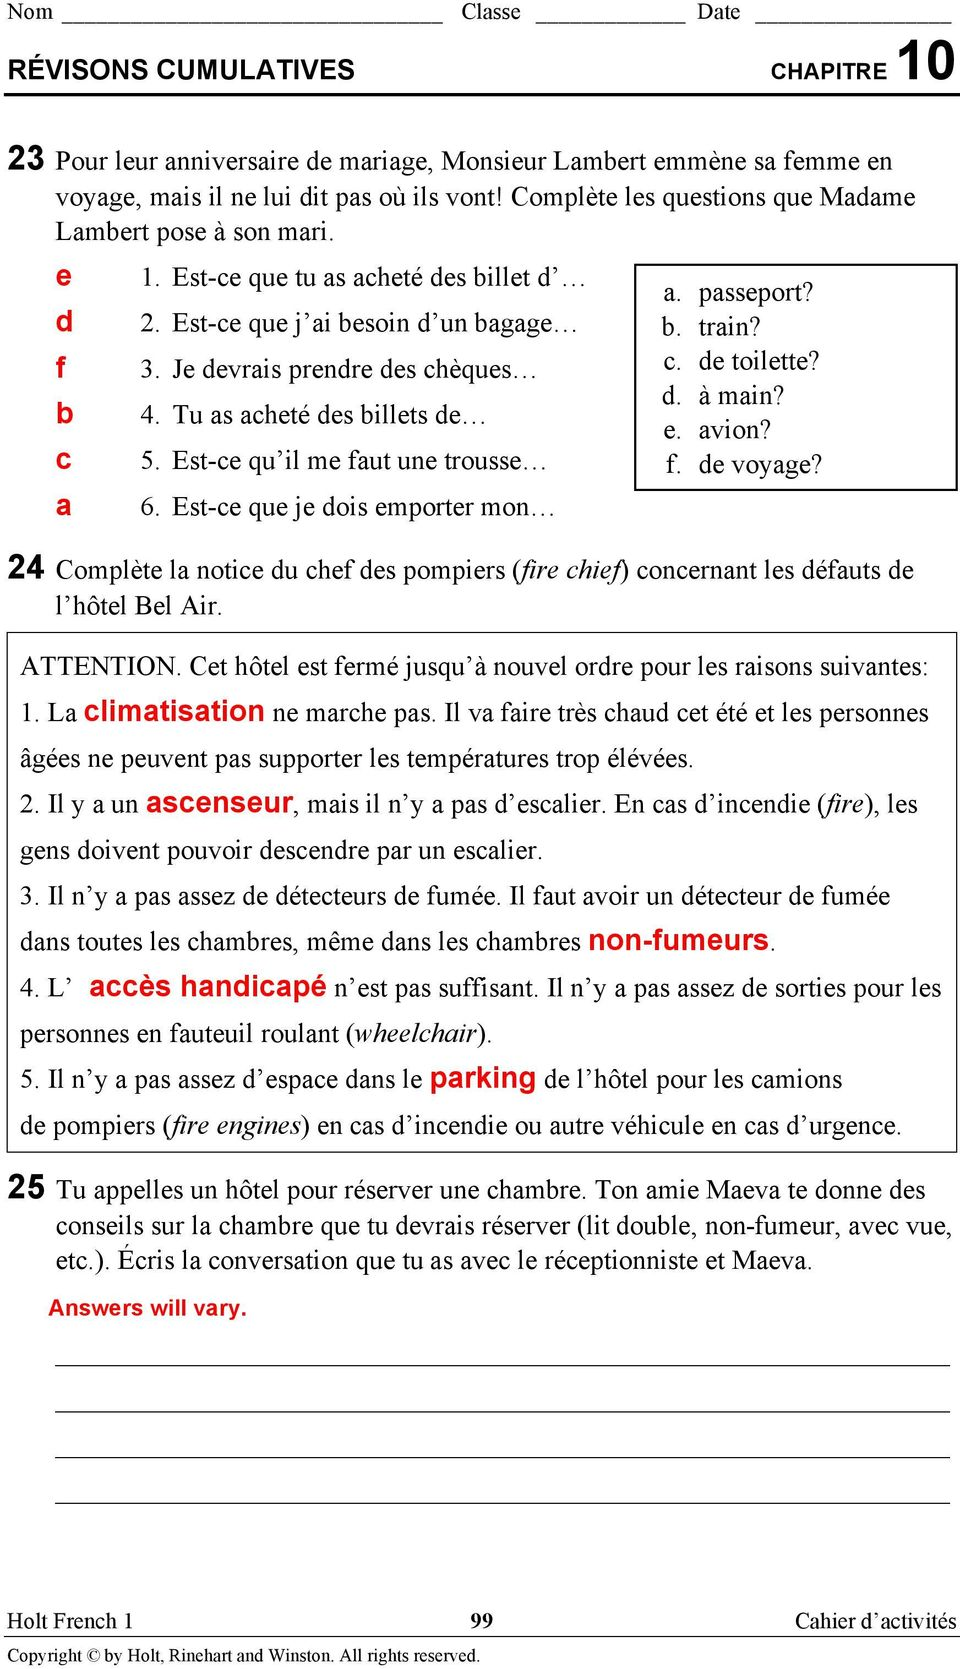 Workbooks holt french 3 bien dit workbook answers free printable chapitre 10 pdf workbooks holt fandeluxe Image collections